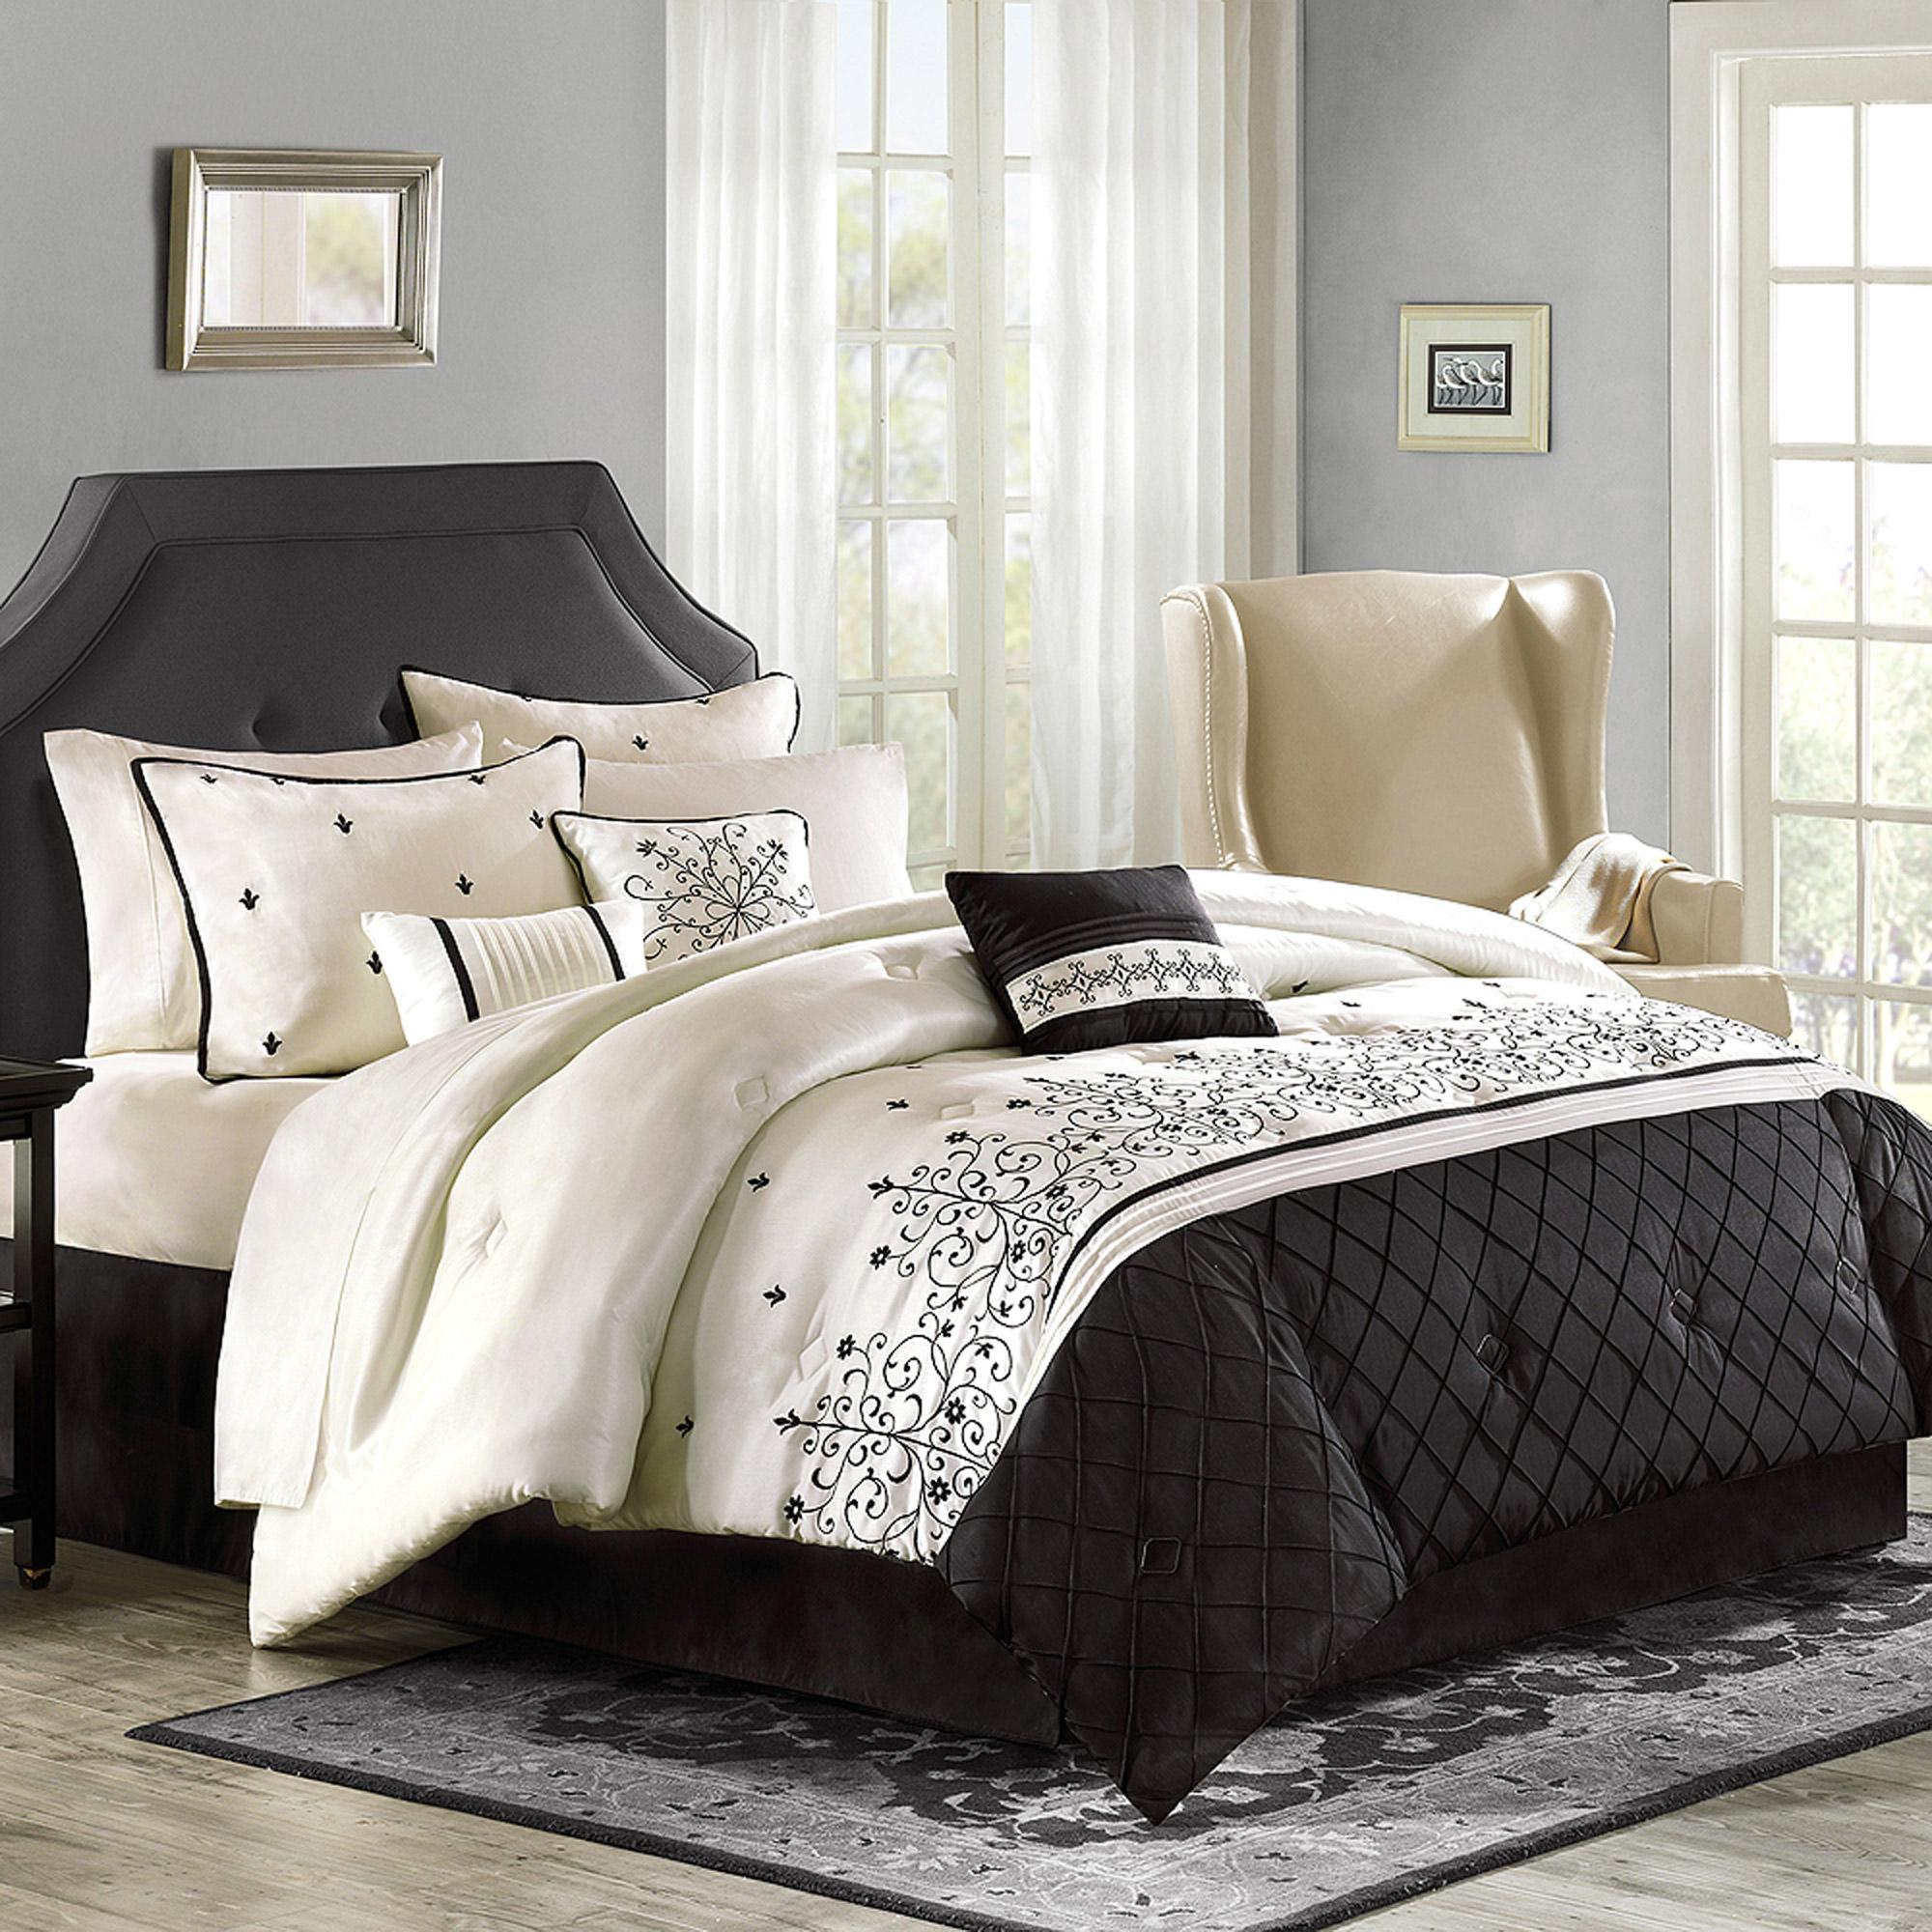 Pacific Coast Comforter | Macys Down Comforter | Feather Comforter Set